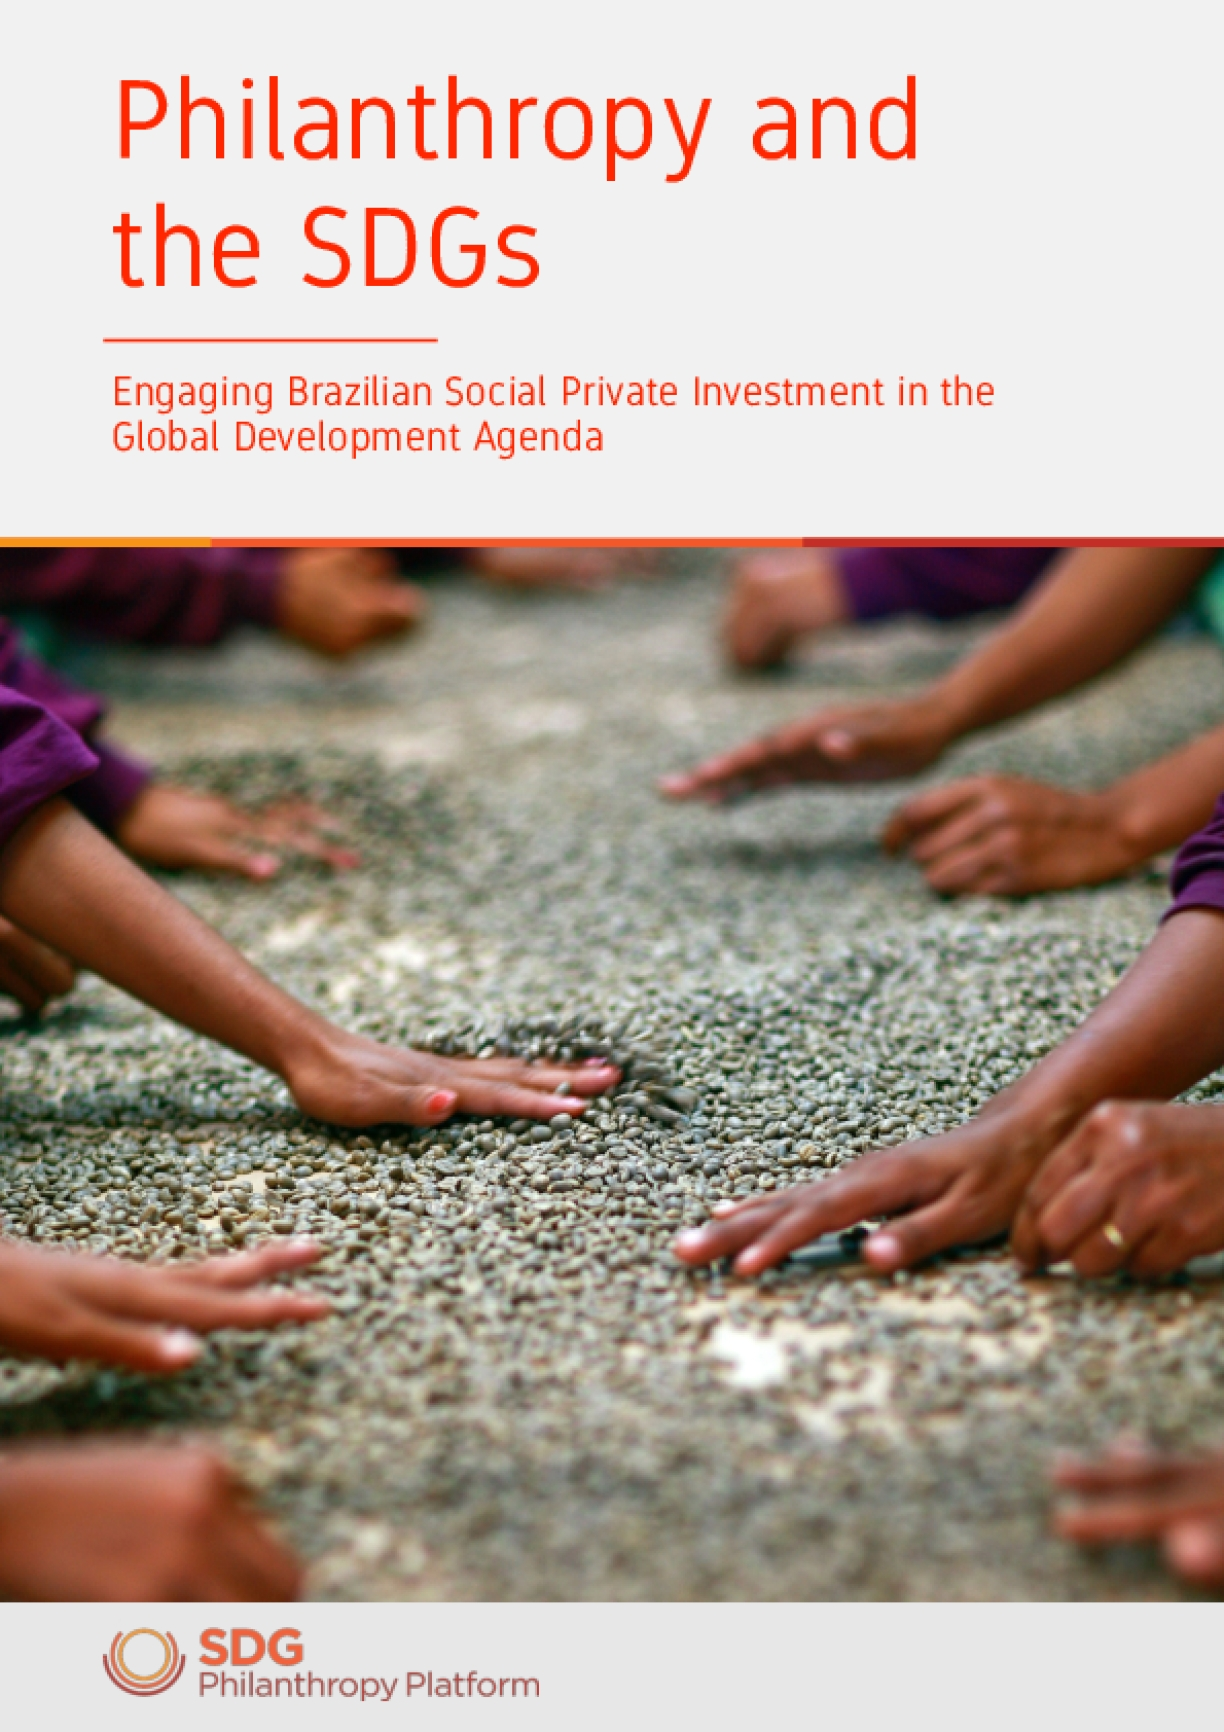 Philanthropy and the Sustainable Development Goals: Engaging Brazilian Private Social Investment in the Global Development Agenda